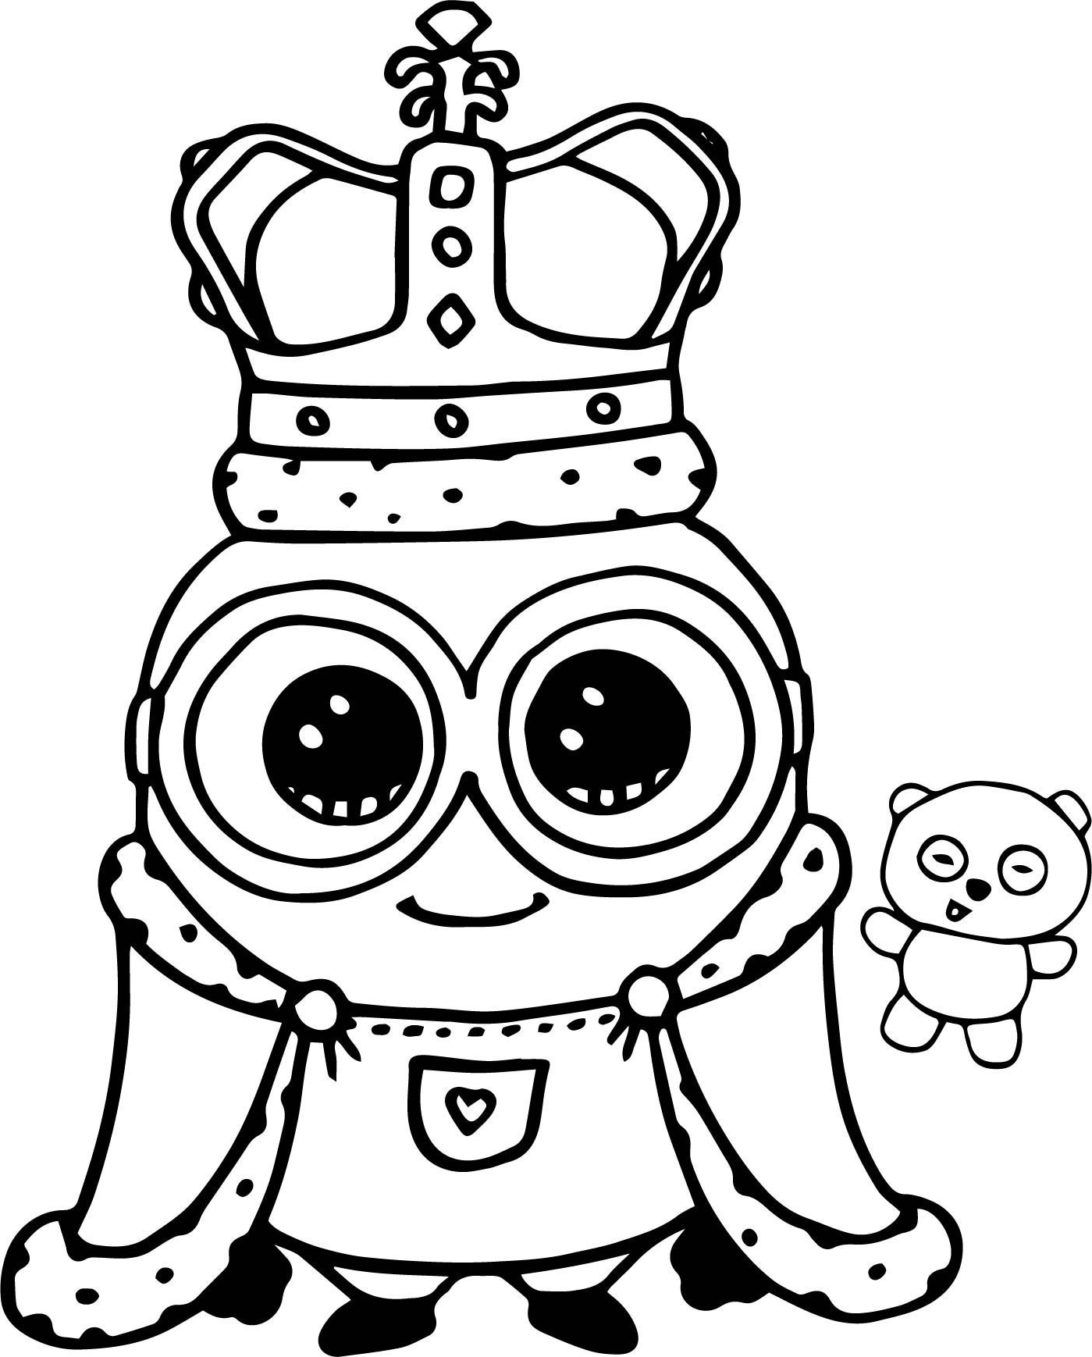 minion pictures to print minion coloring pages best coloring pages for kids minion to pictures print 1 1